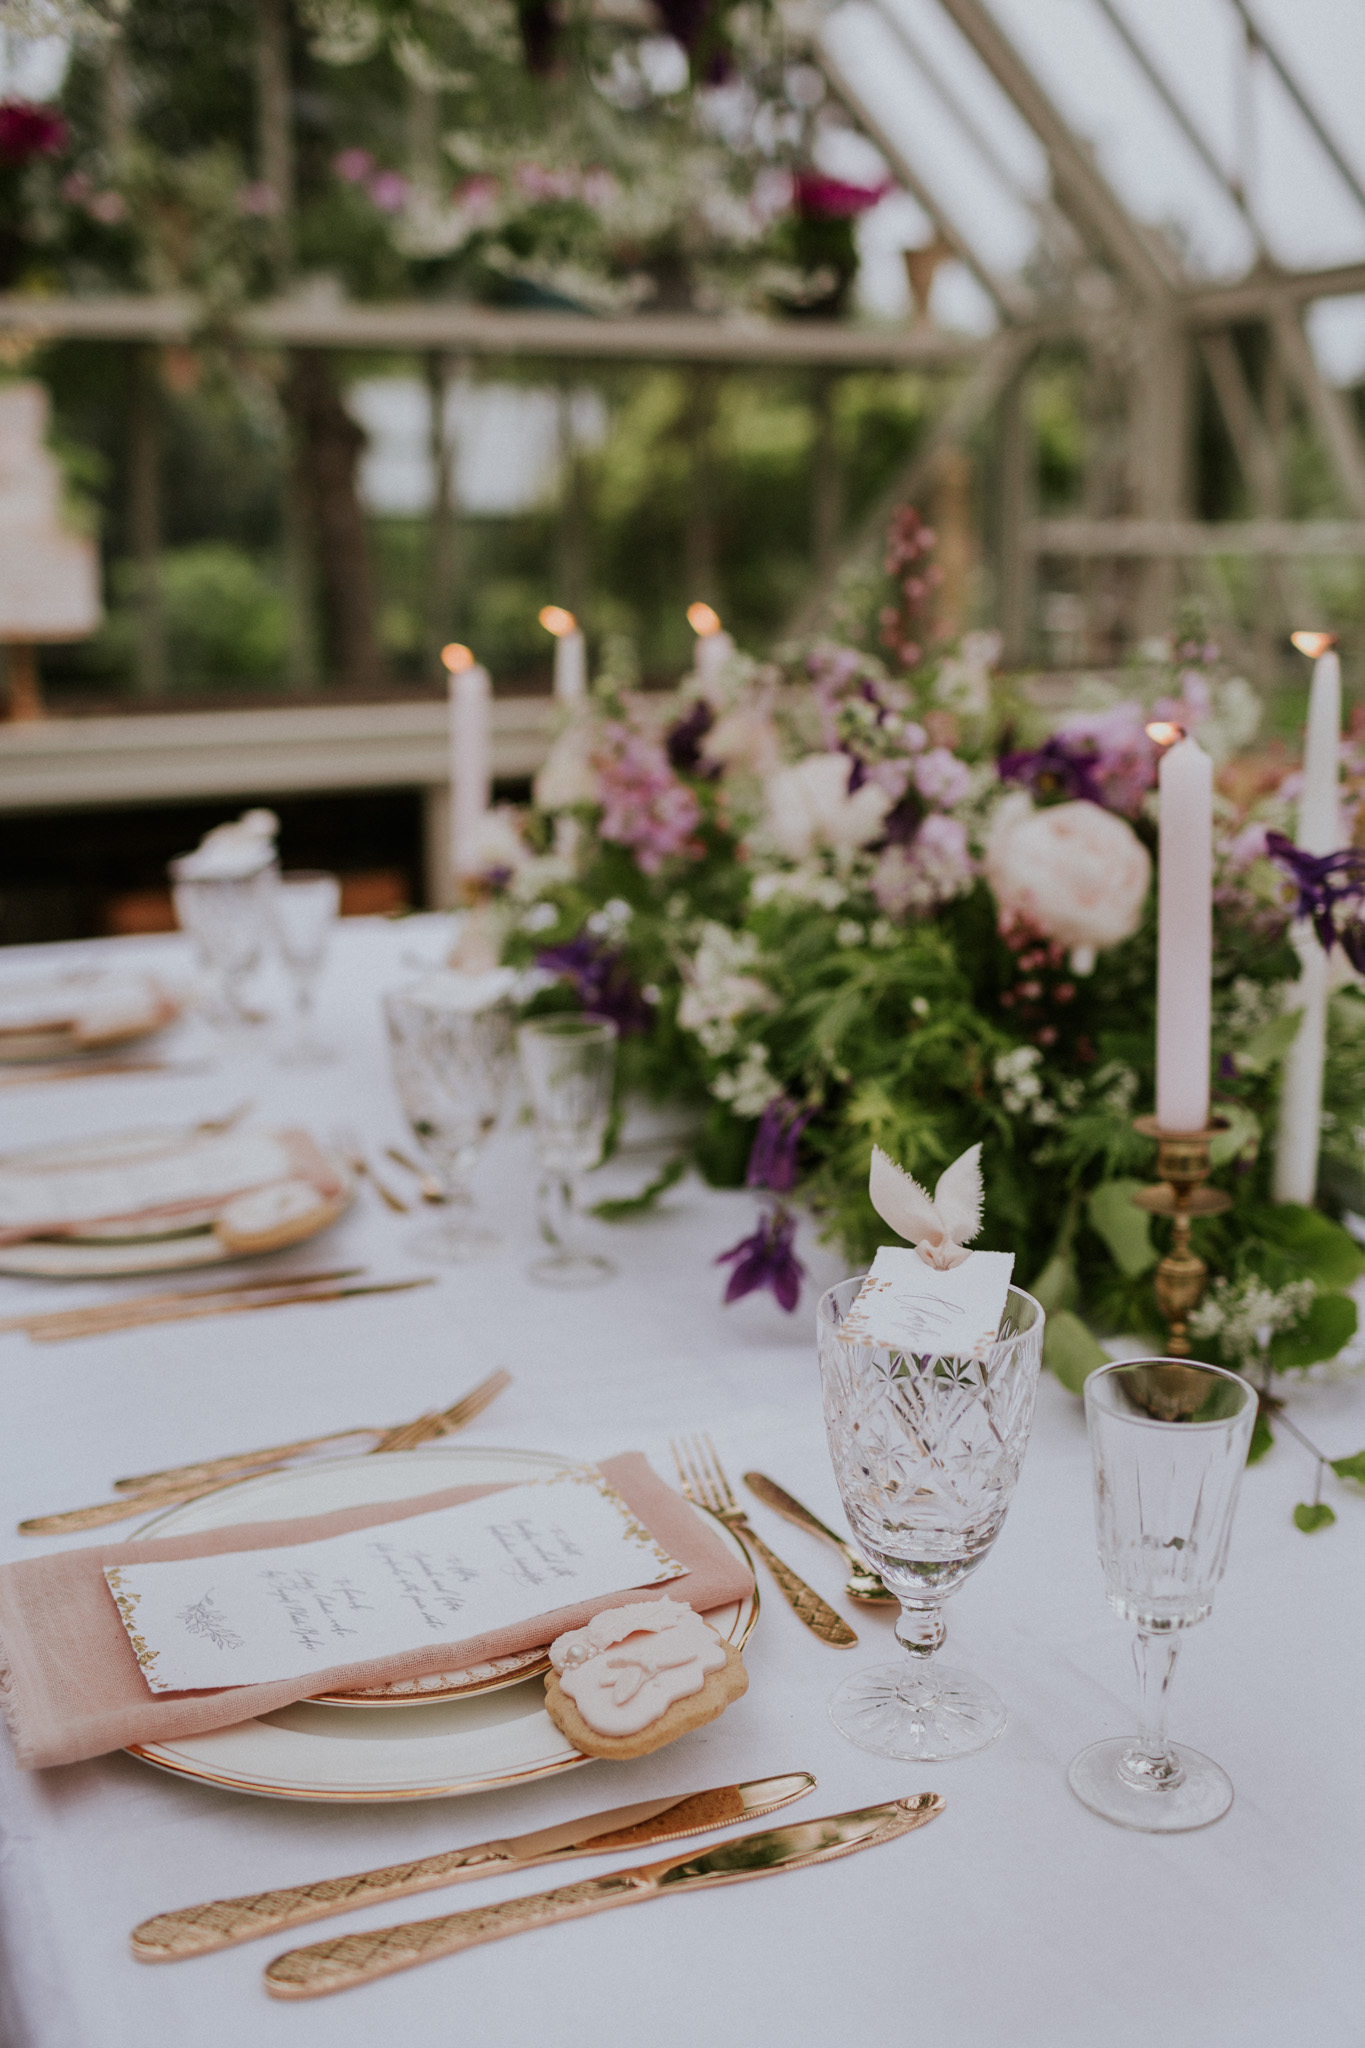 Romantic wedding table with touches of blush and gold. Photo by Maja Tsolo